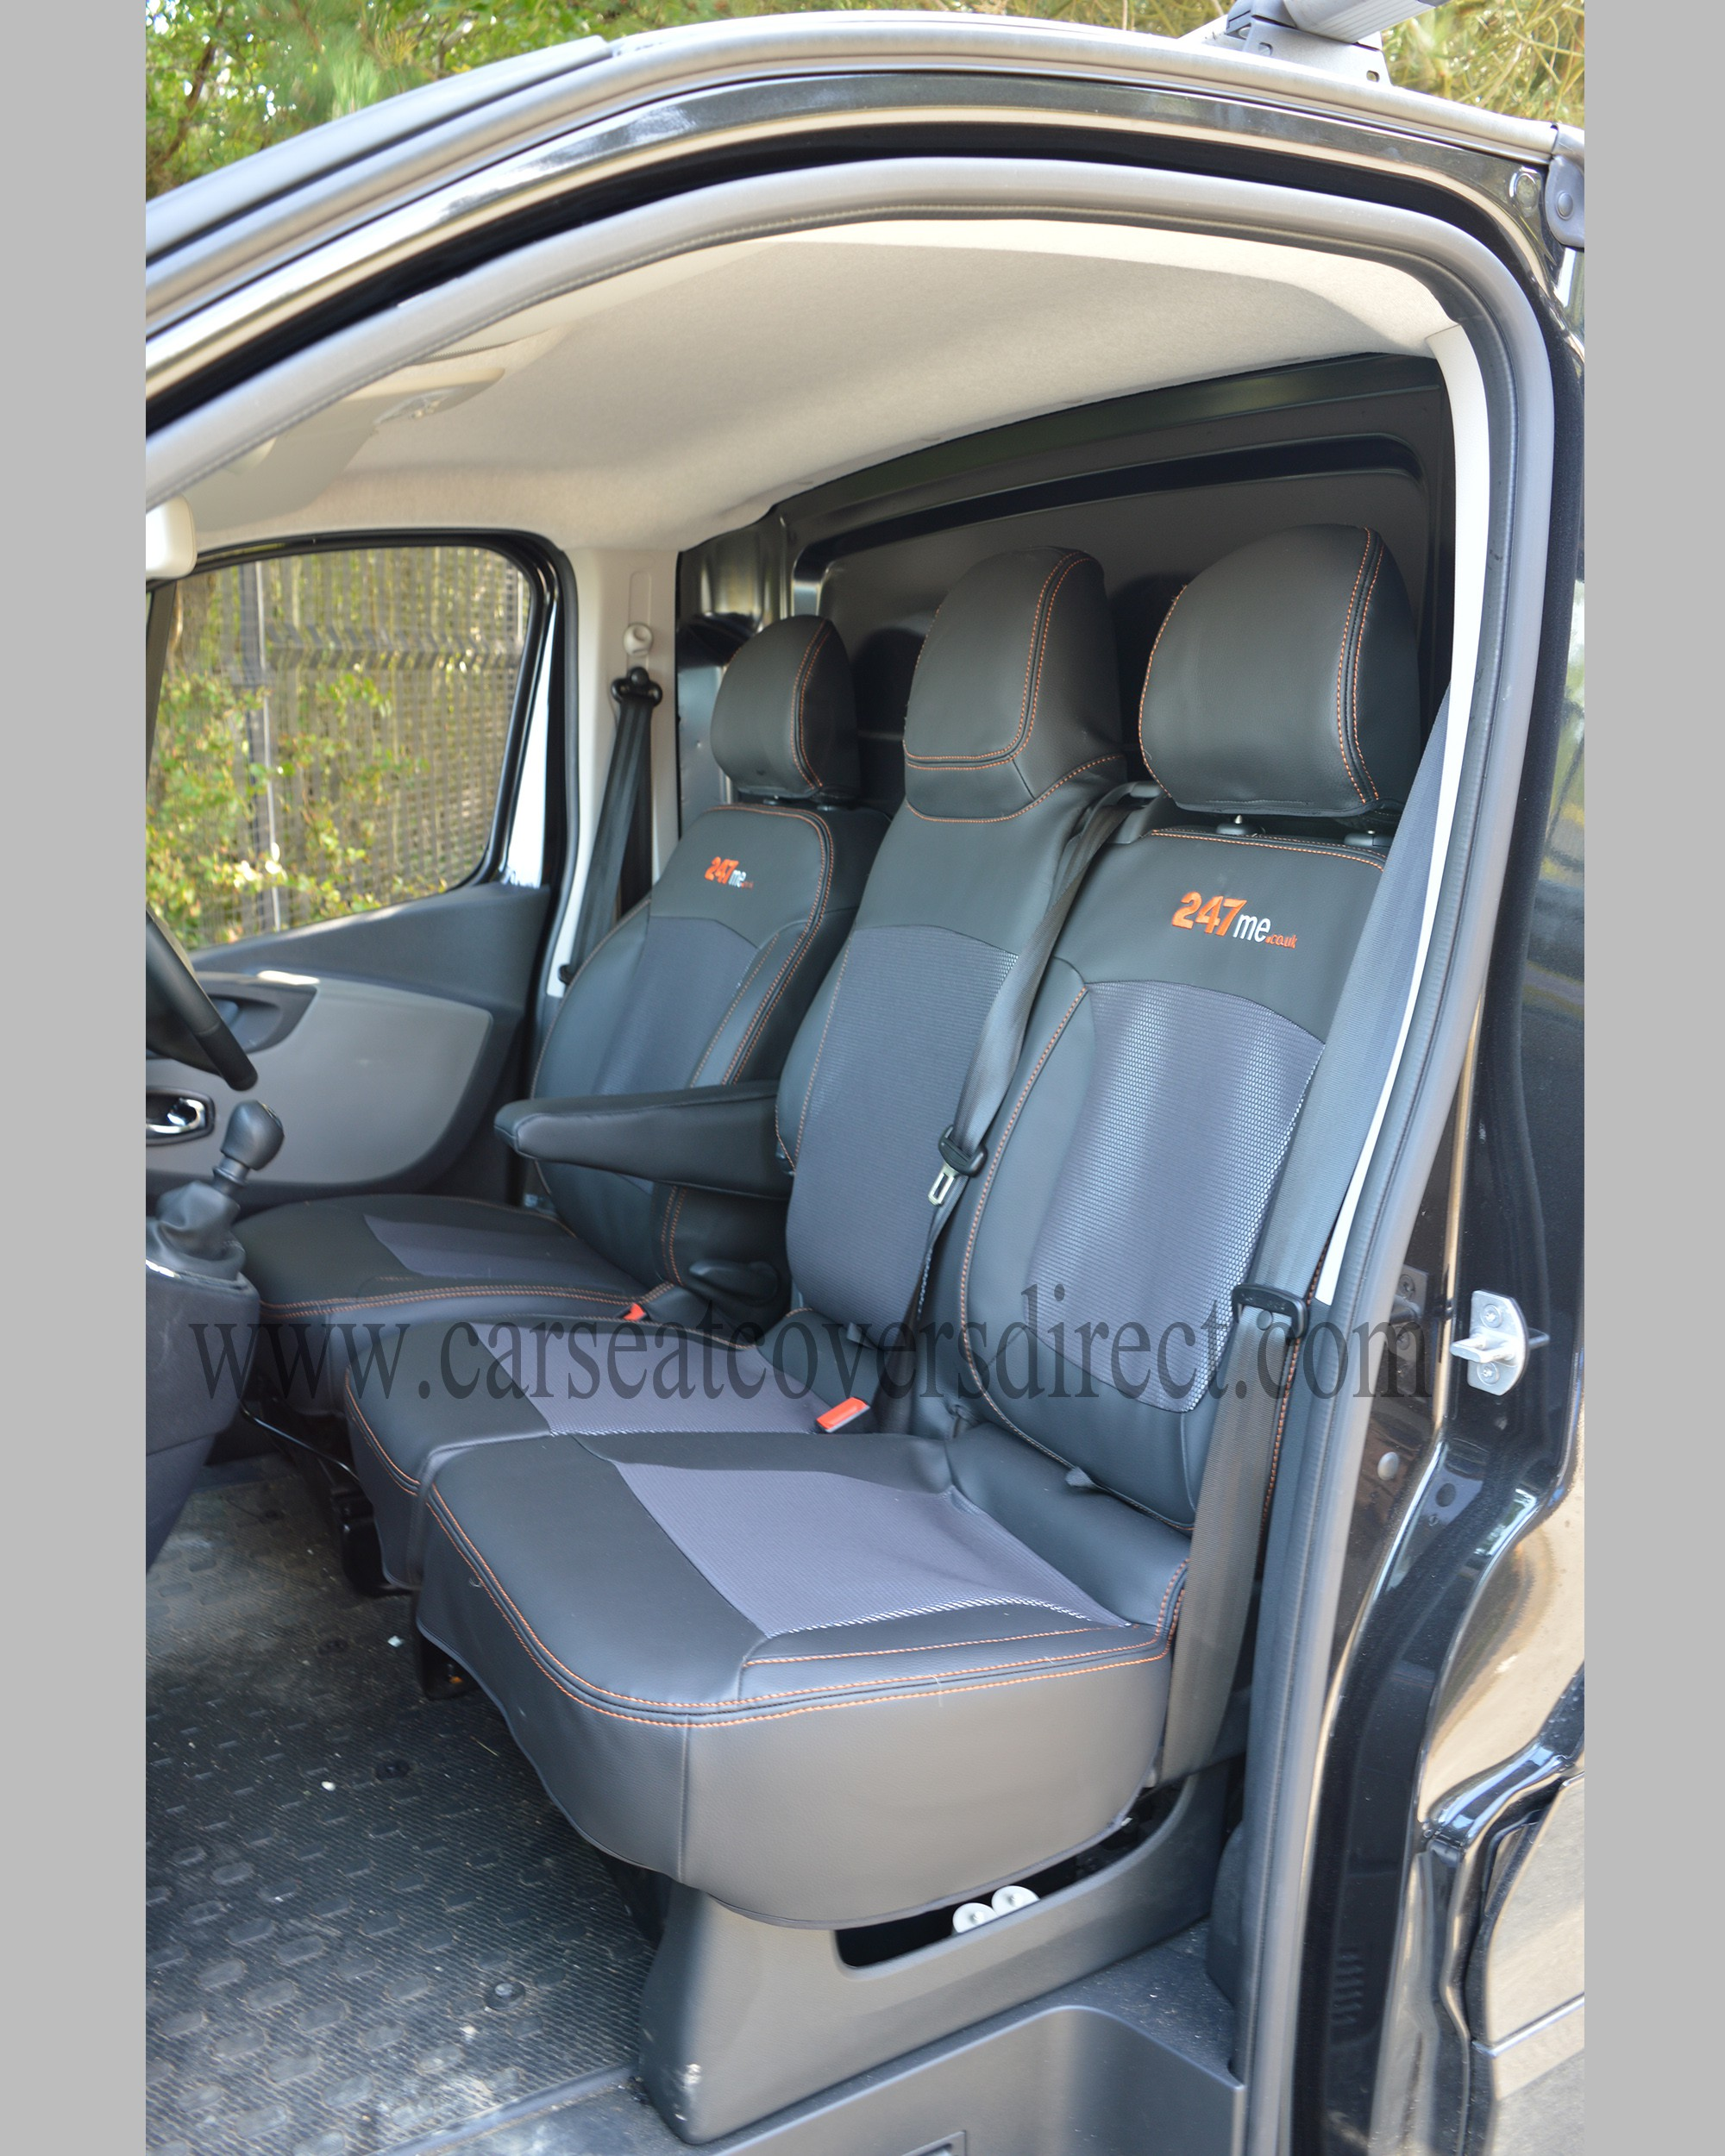 Opel Vivaro Seat Covers - Black Leatherette with Cloth Centres (3rd Gen)